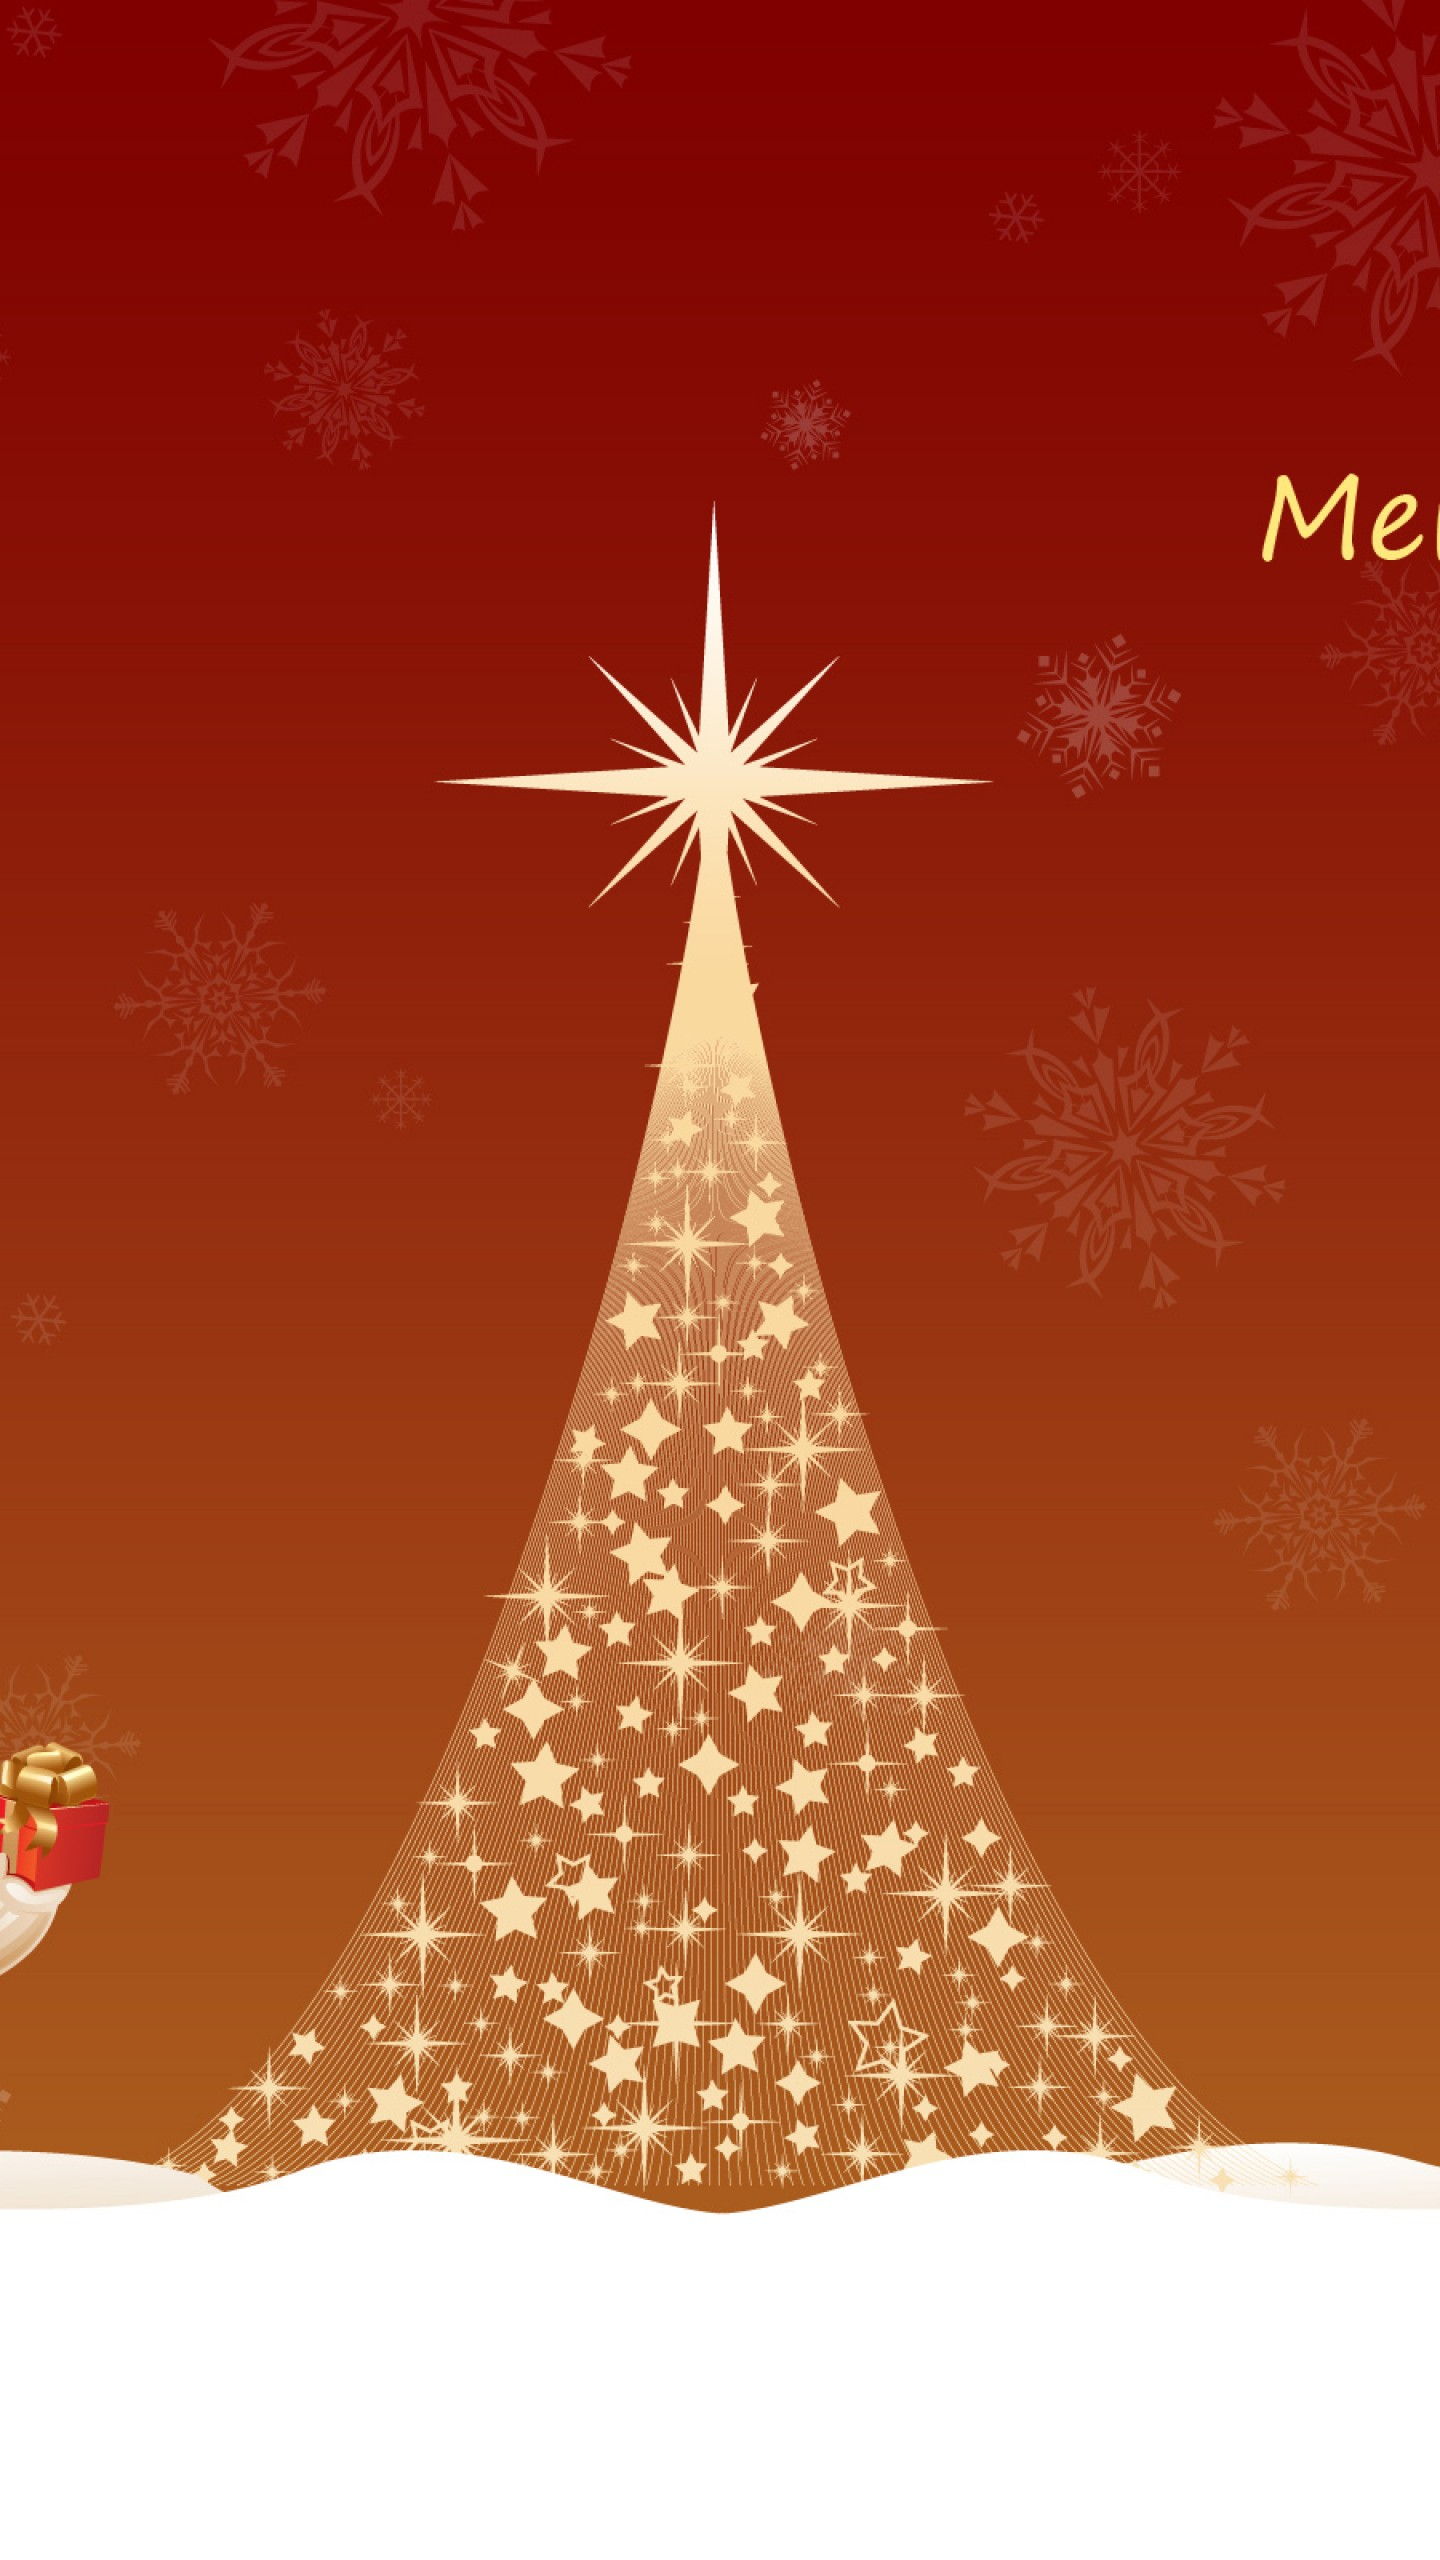 Merry Christmas Tree iPhone Wallpaper